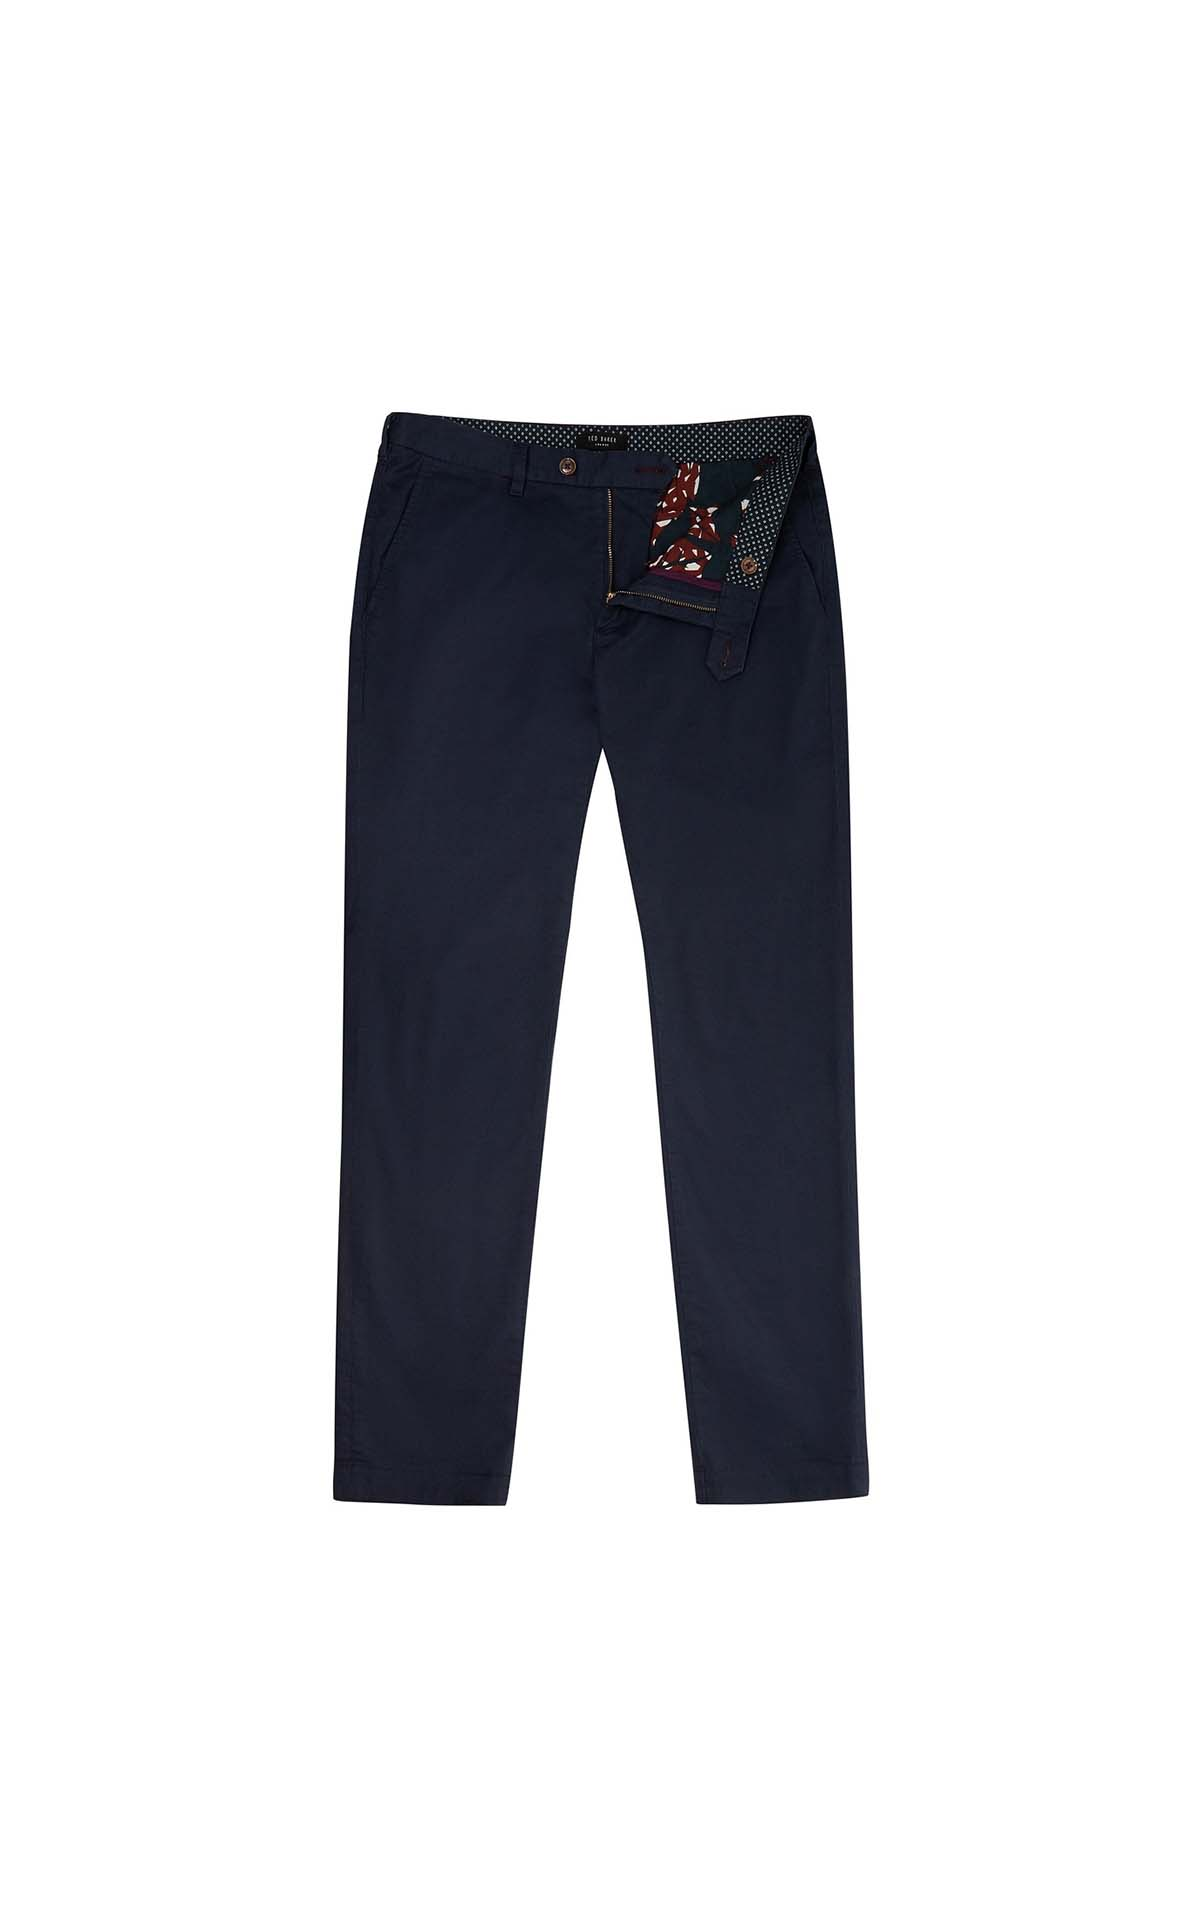 Ted Baker Slim fit printed chino at The Bicester Village Shopping Collection